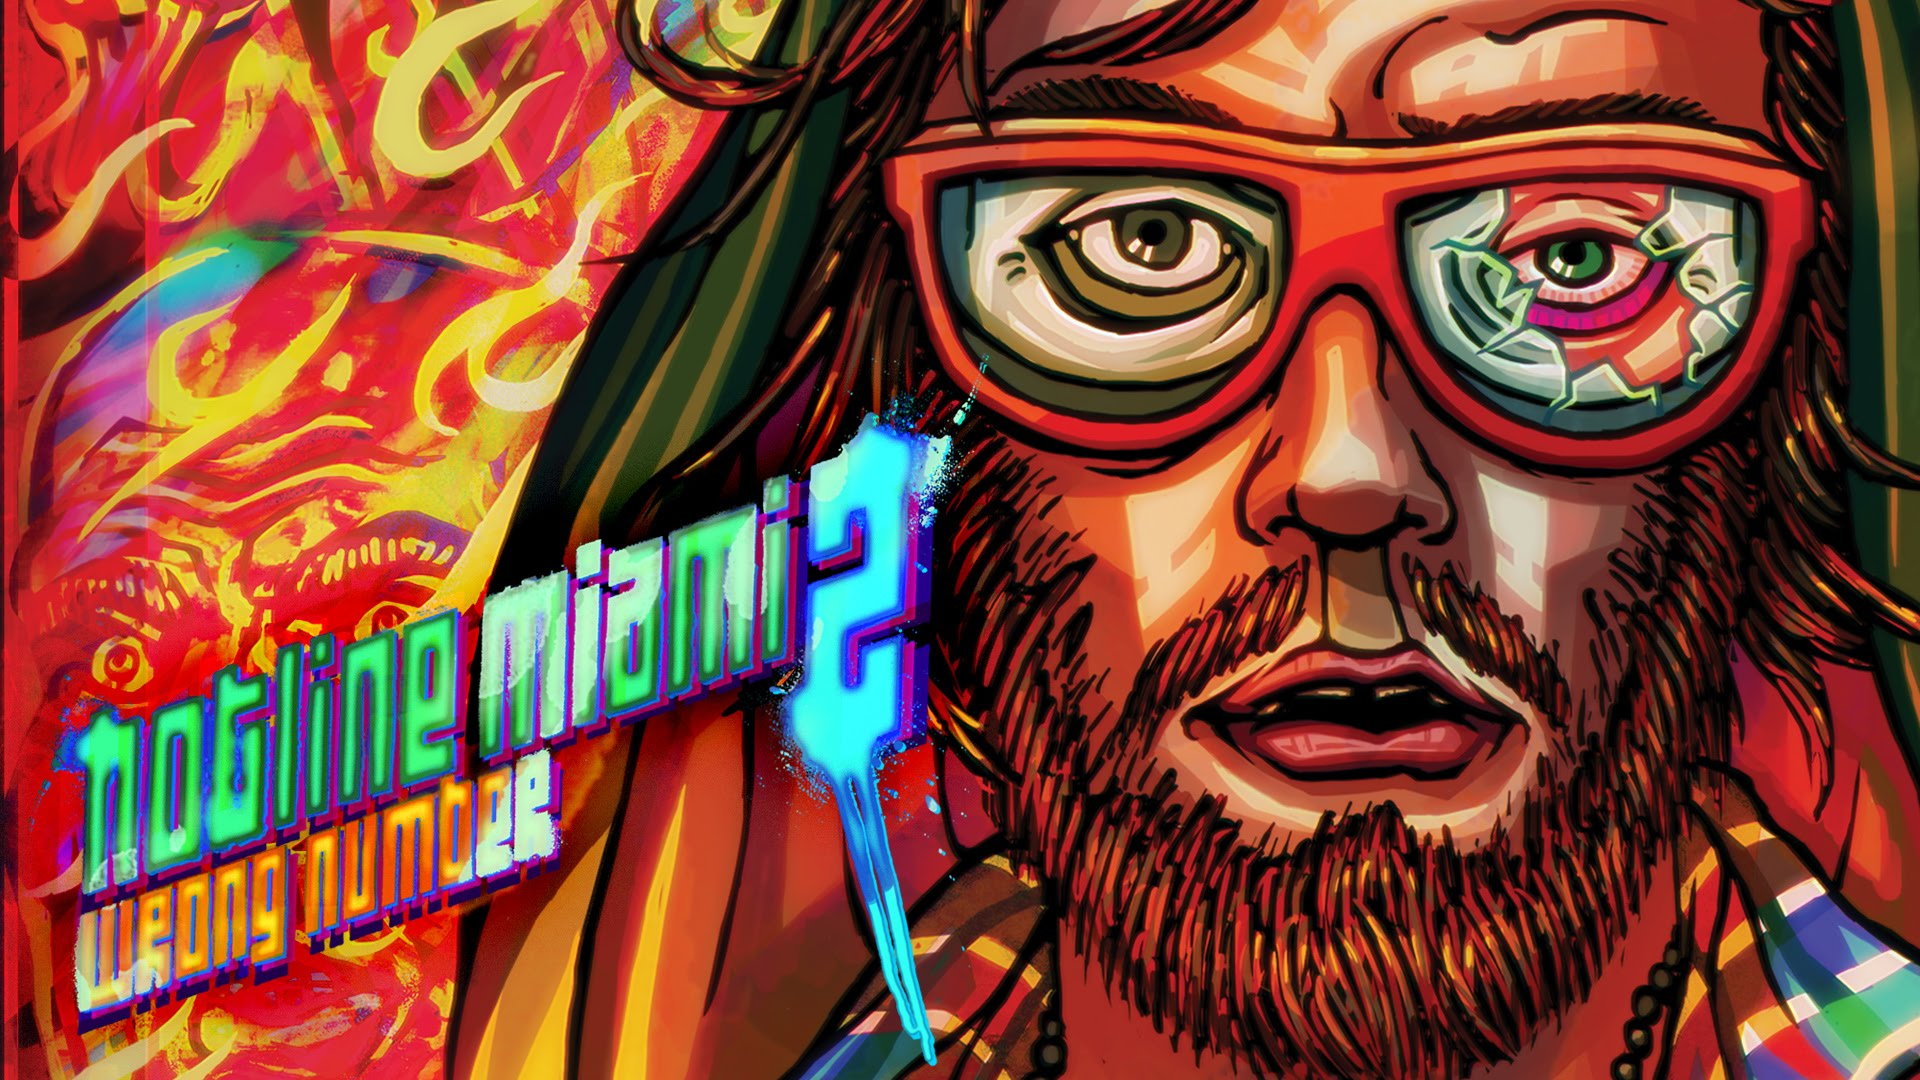 hotlinemiami2art